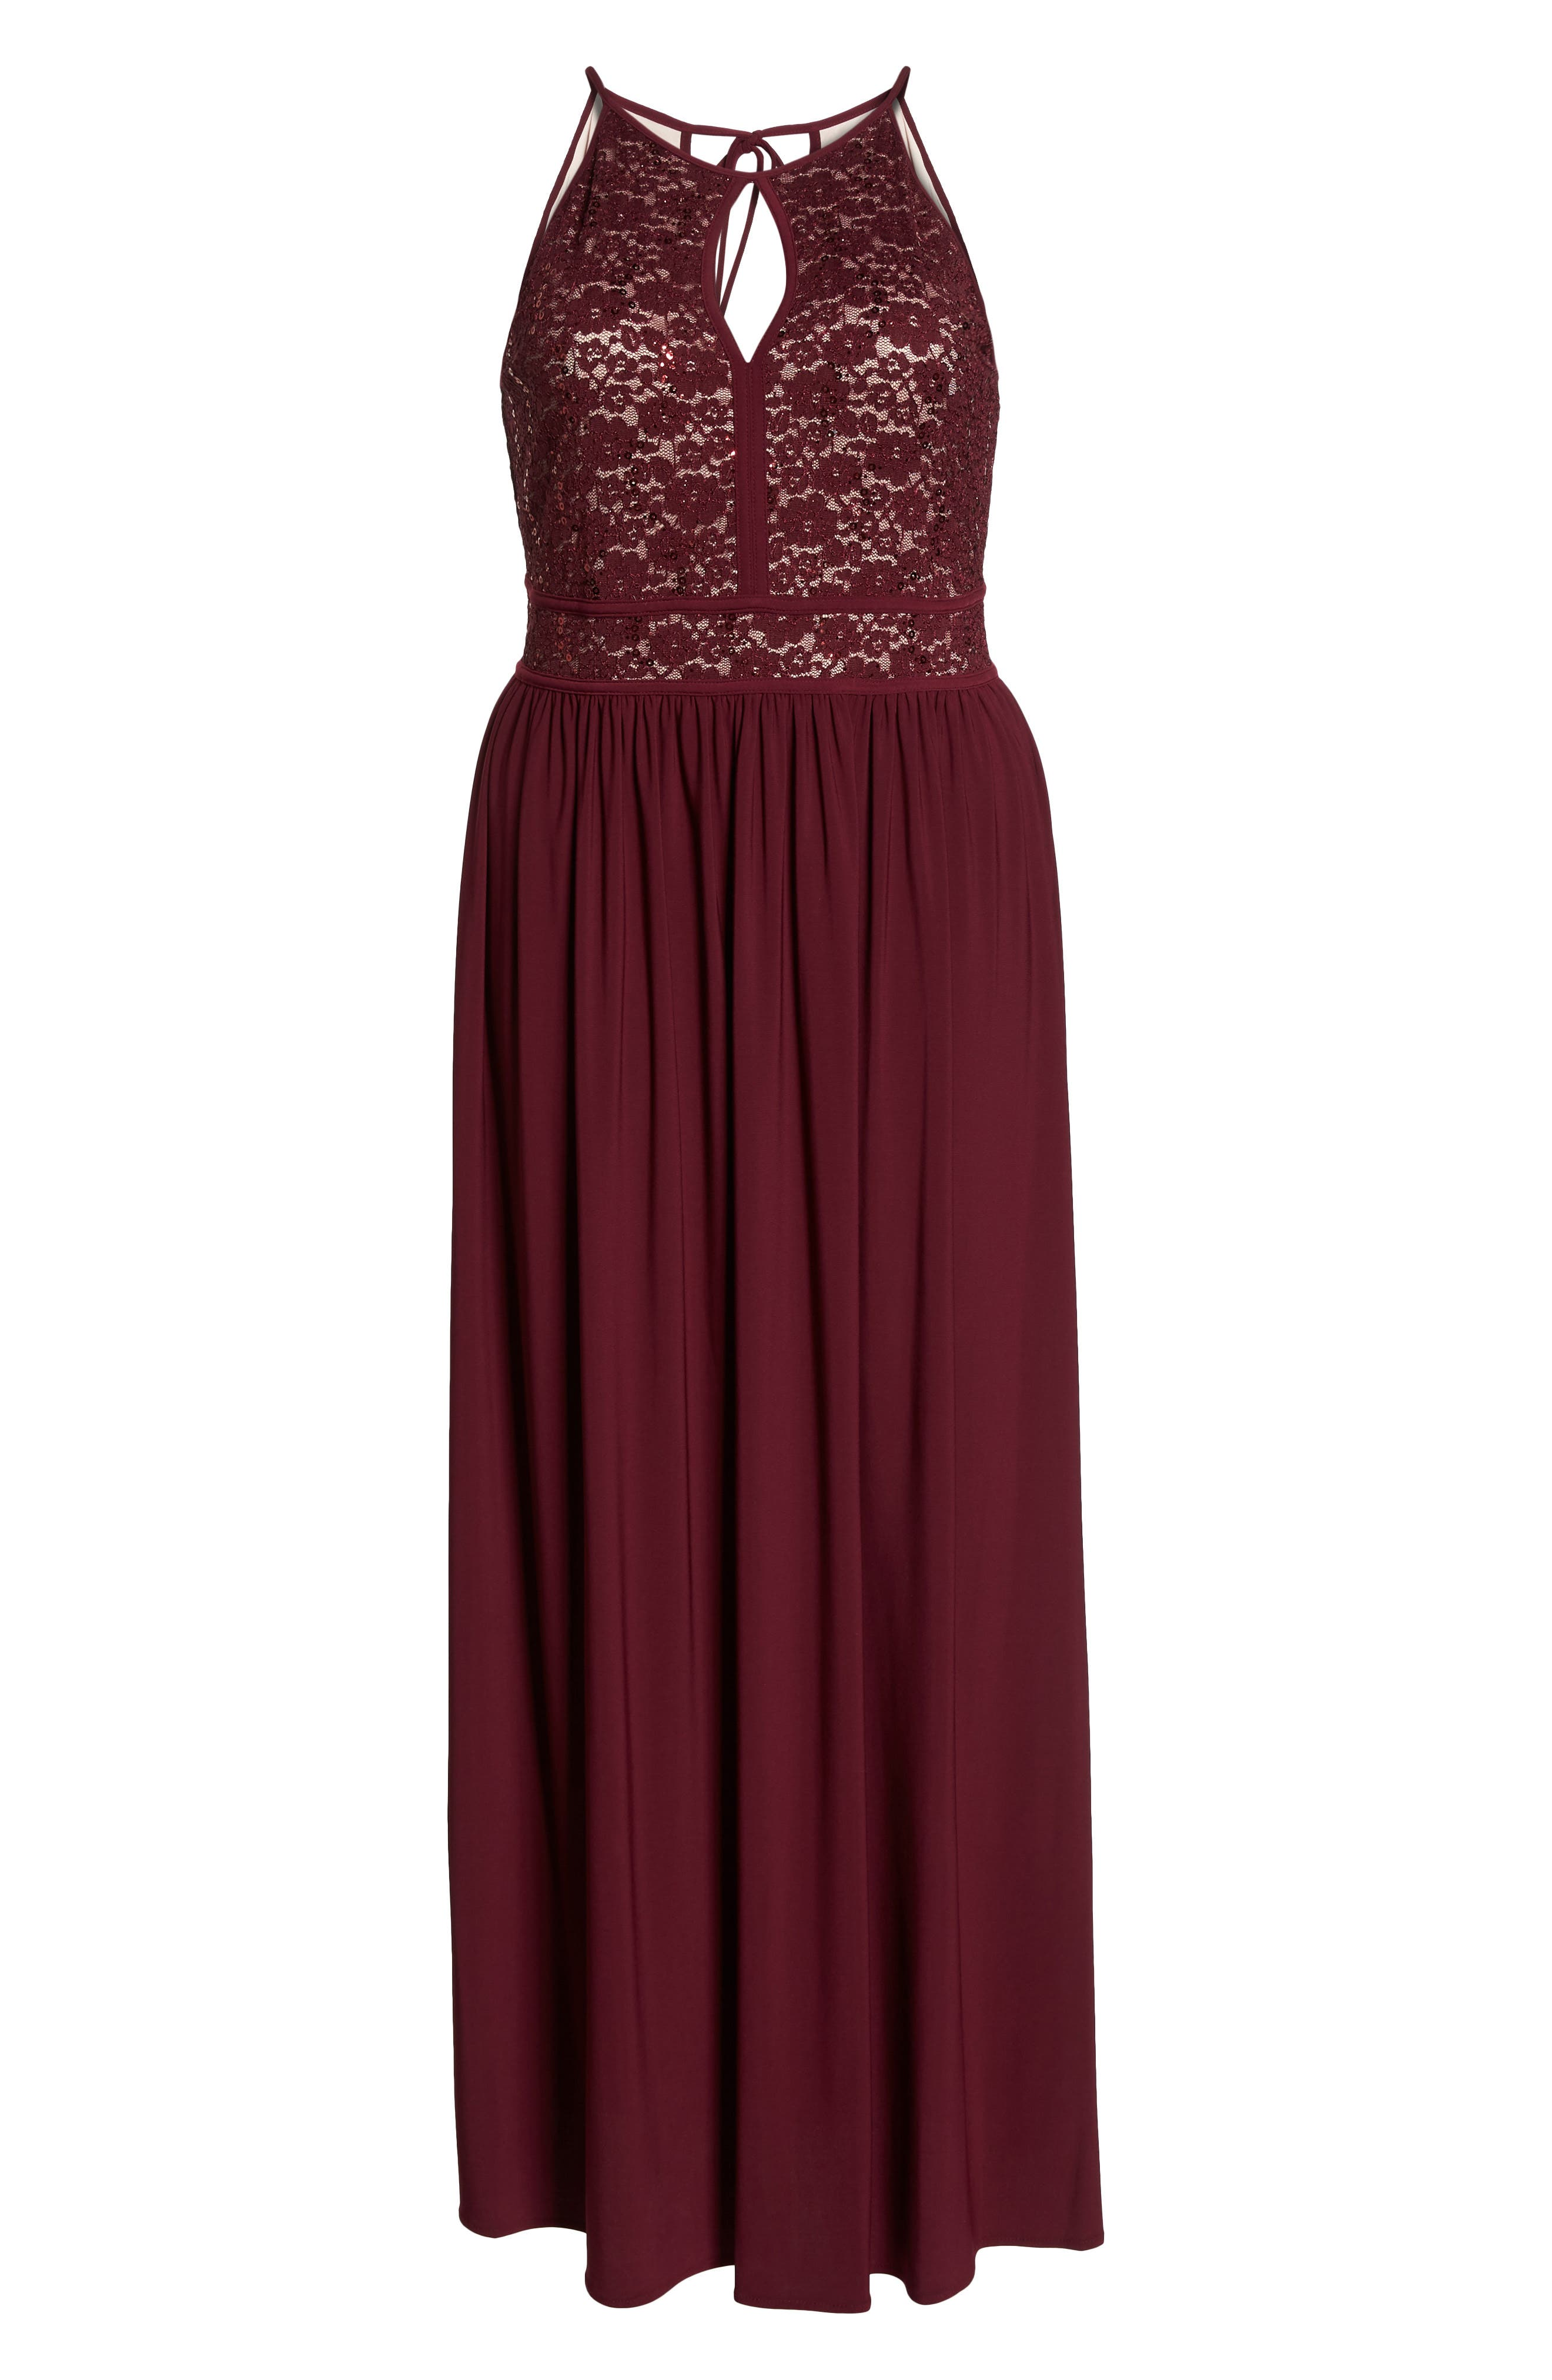 MORGAN & CO., Lace Pleated Gown, Alternate thumbnail 6, color, MERLOT